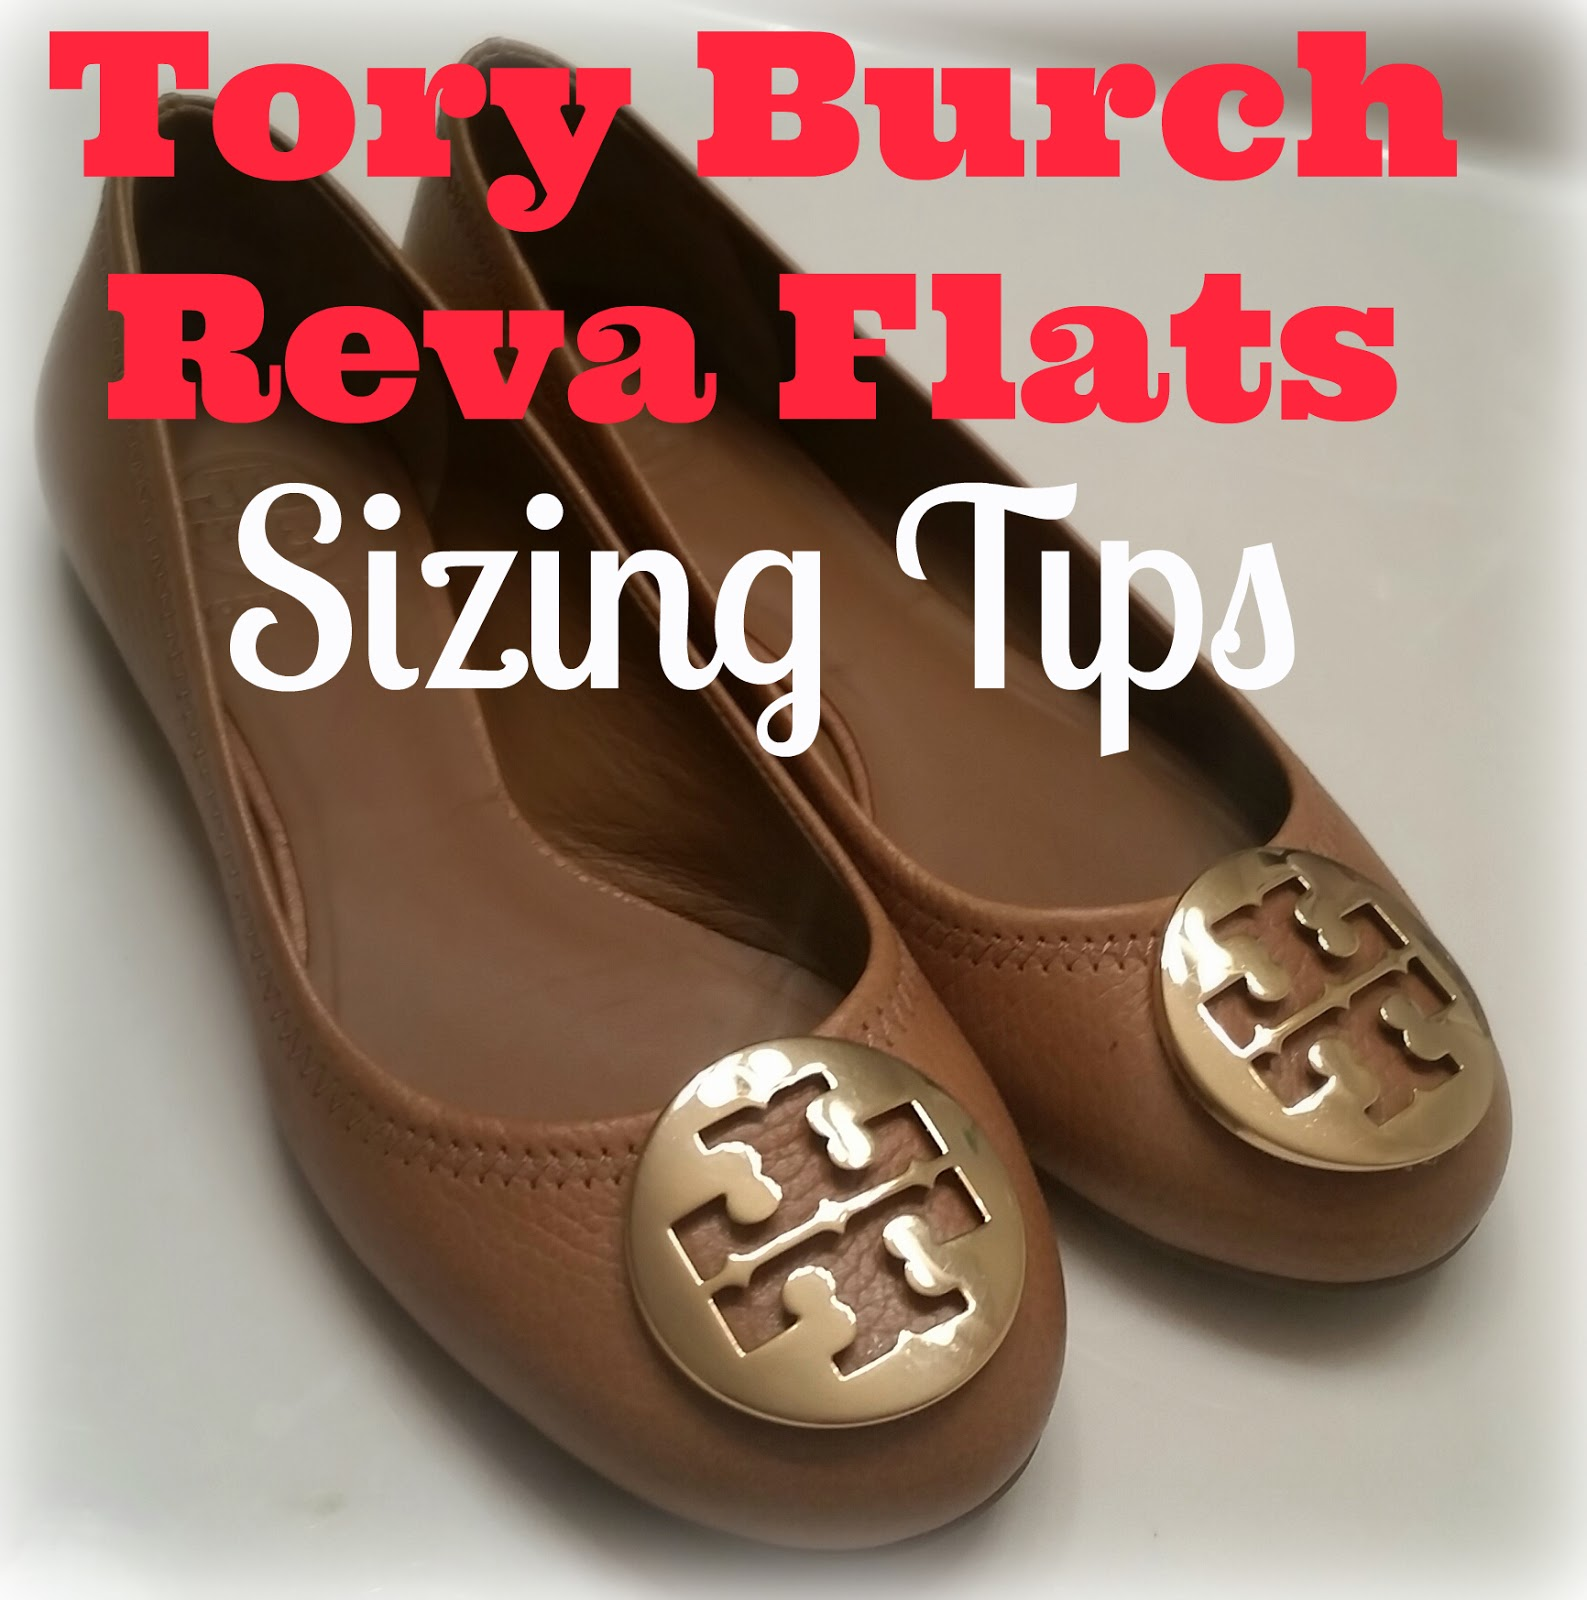 Our Little Loves: Tory Burch Reva Flats Sizing Tips